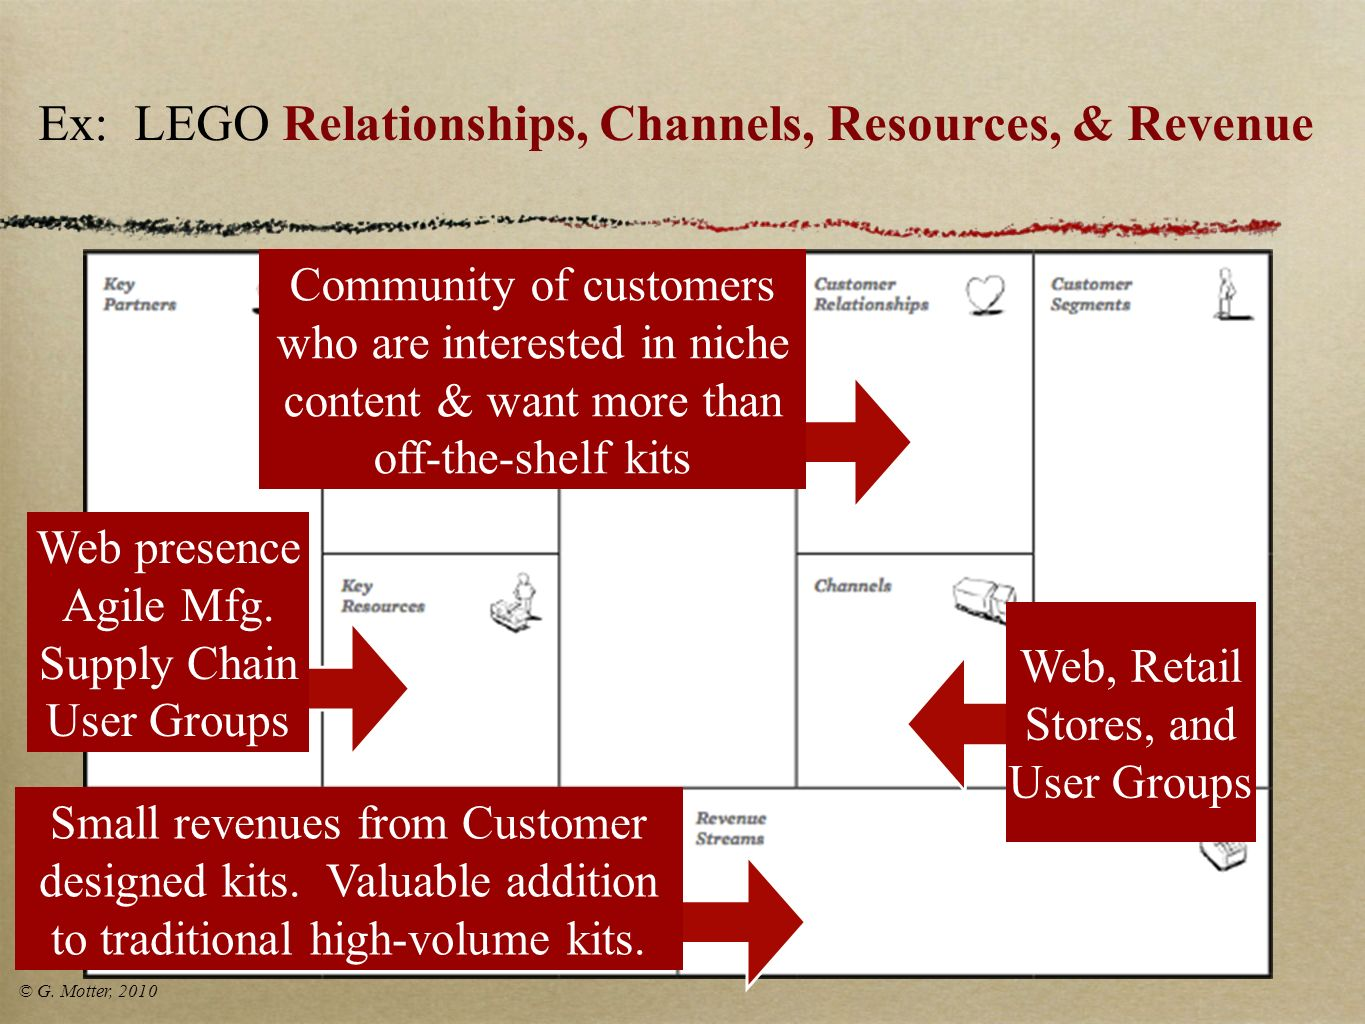 Ex: LEGO Relationships, Channels, Resources, & Revenue